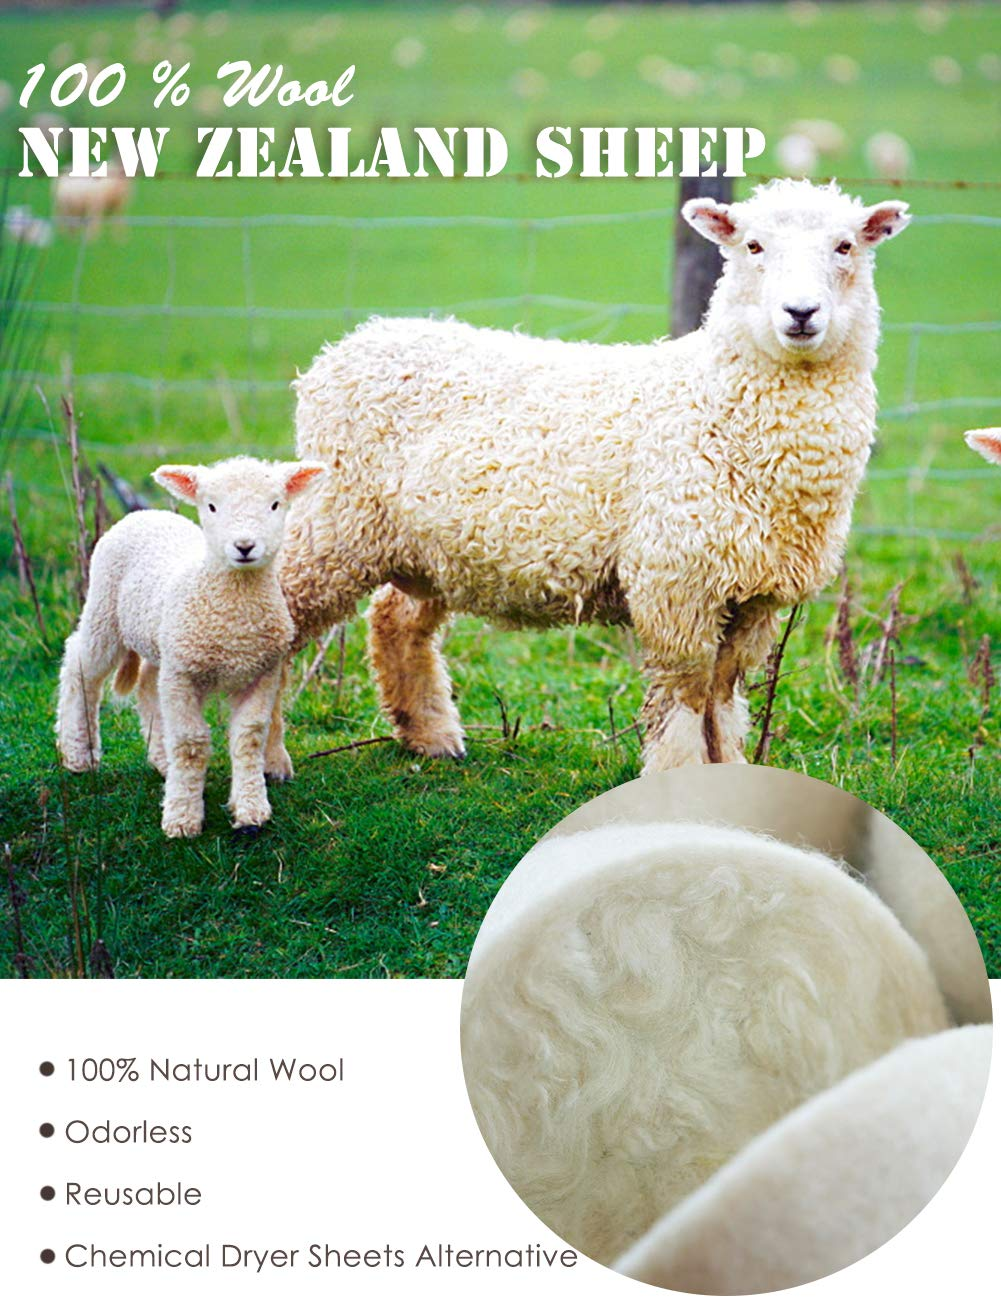 OHOCO Wool Dryer Balls 6 XL Pack from Organic Natural Wool for Laundry, Fabric Softening - Anti Static, Baby Safe, No Lint, Odorless and Reusable, Snowman